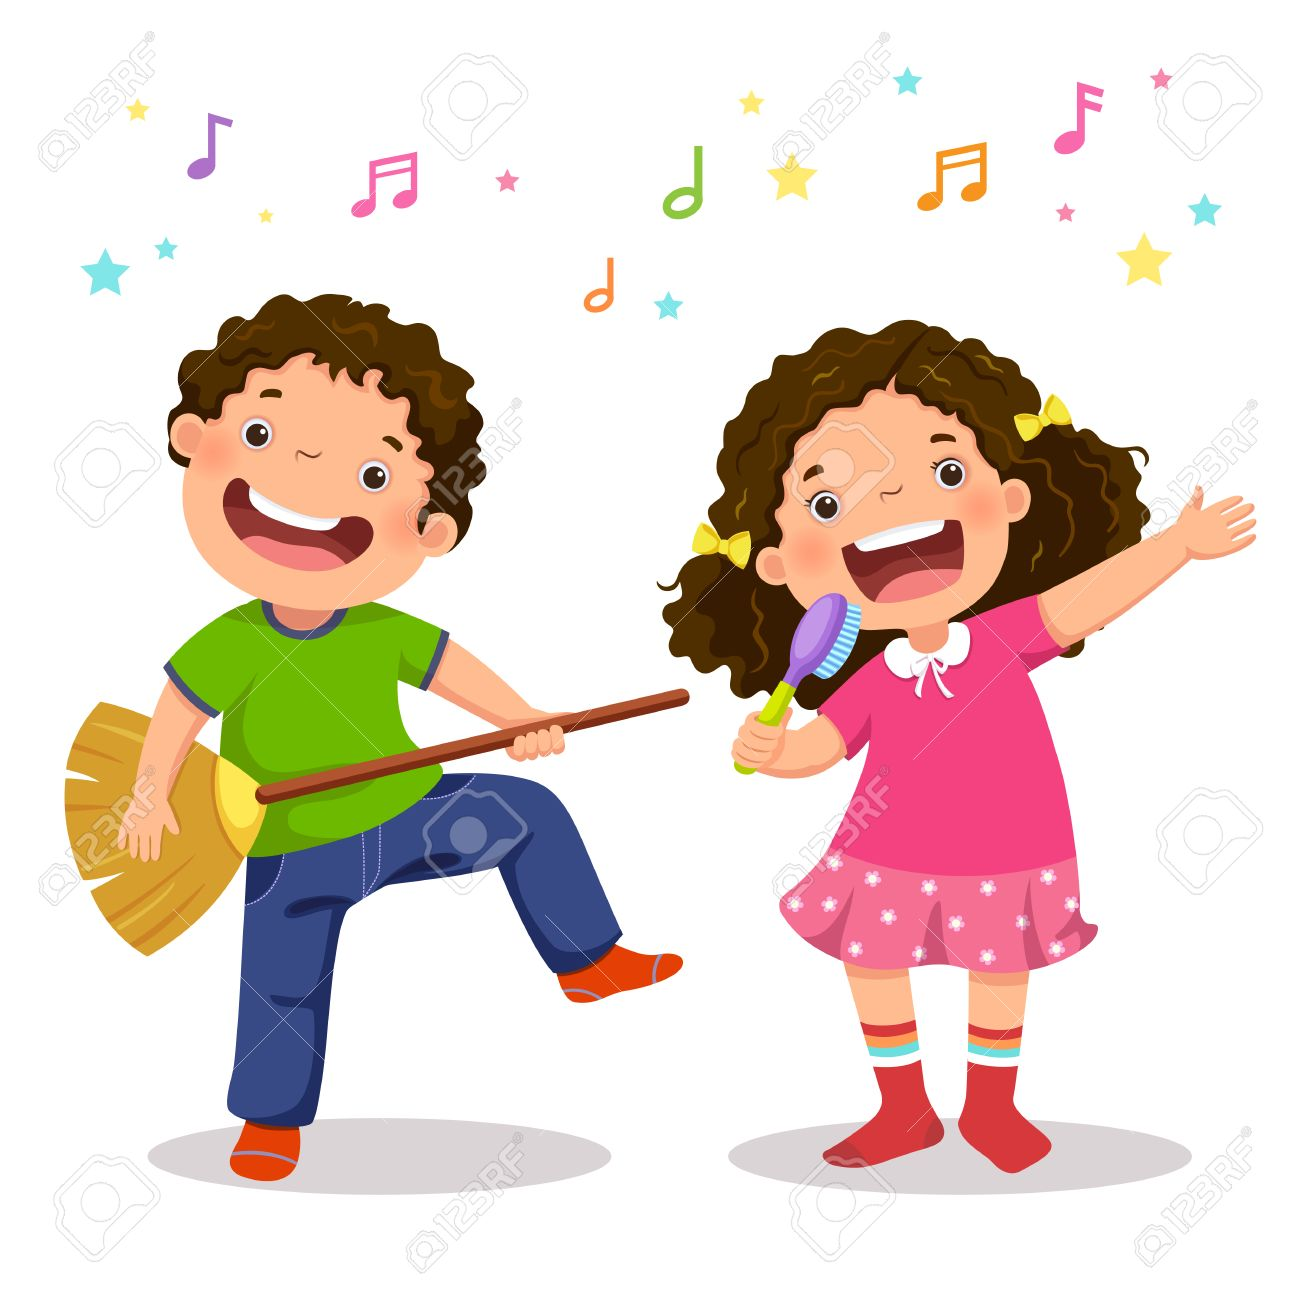 Creative boy playing virtual guitar with broom and girl singing with hairbrush - 80107985